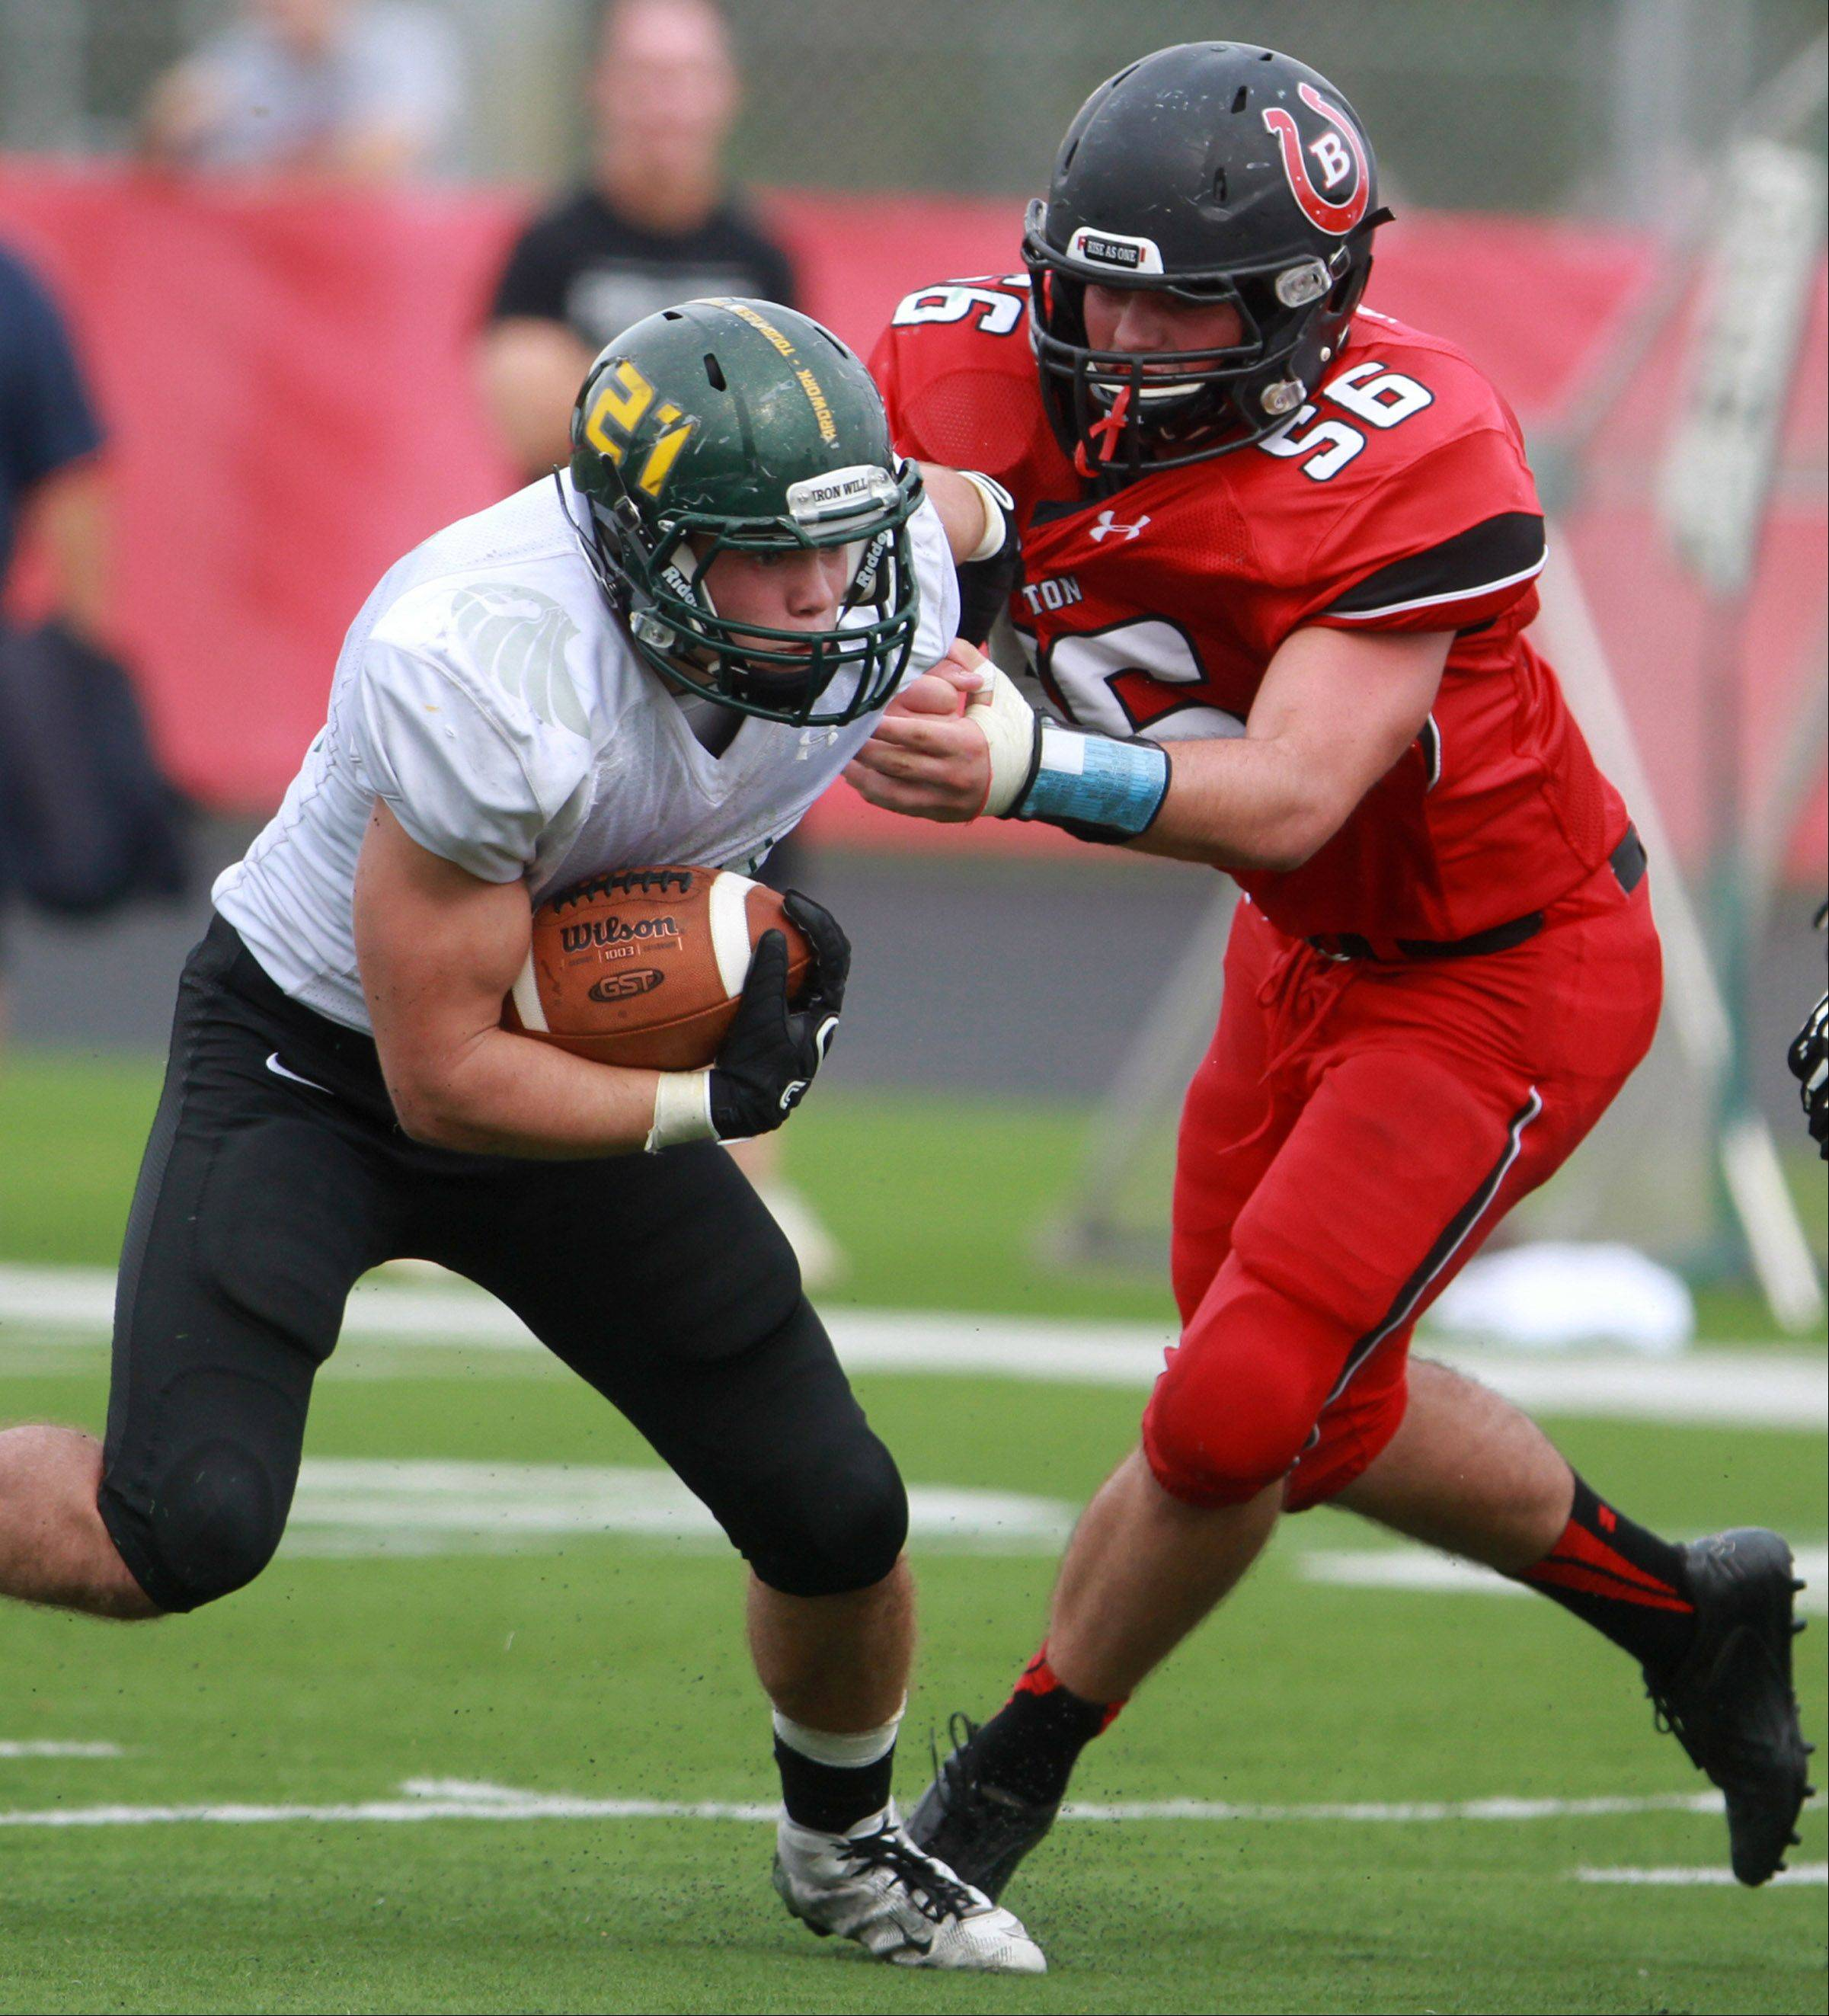 Barrington defender Ryan Blair pulls down Fremd running-back Jeff McGlade at Barrington on Saturday,October 5.